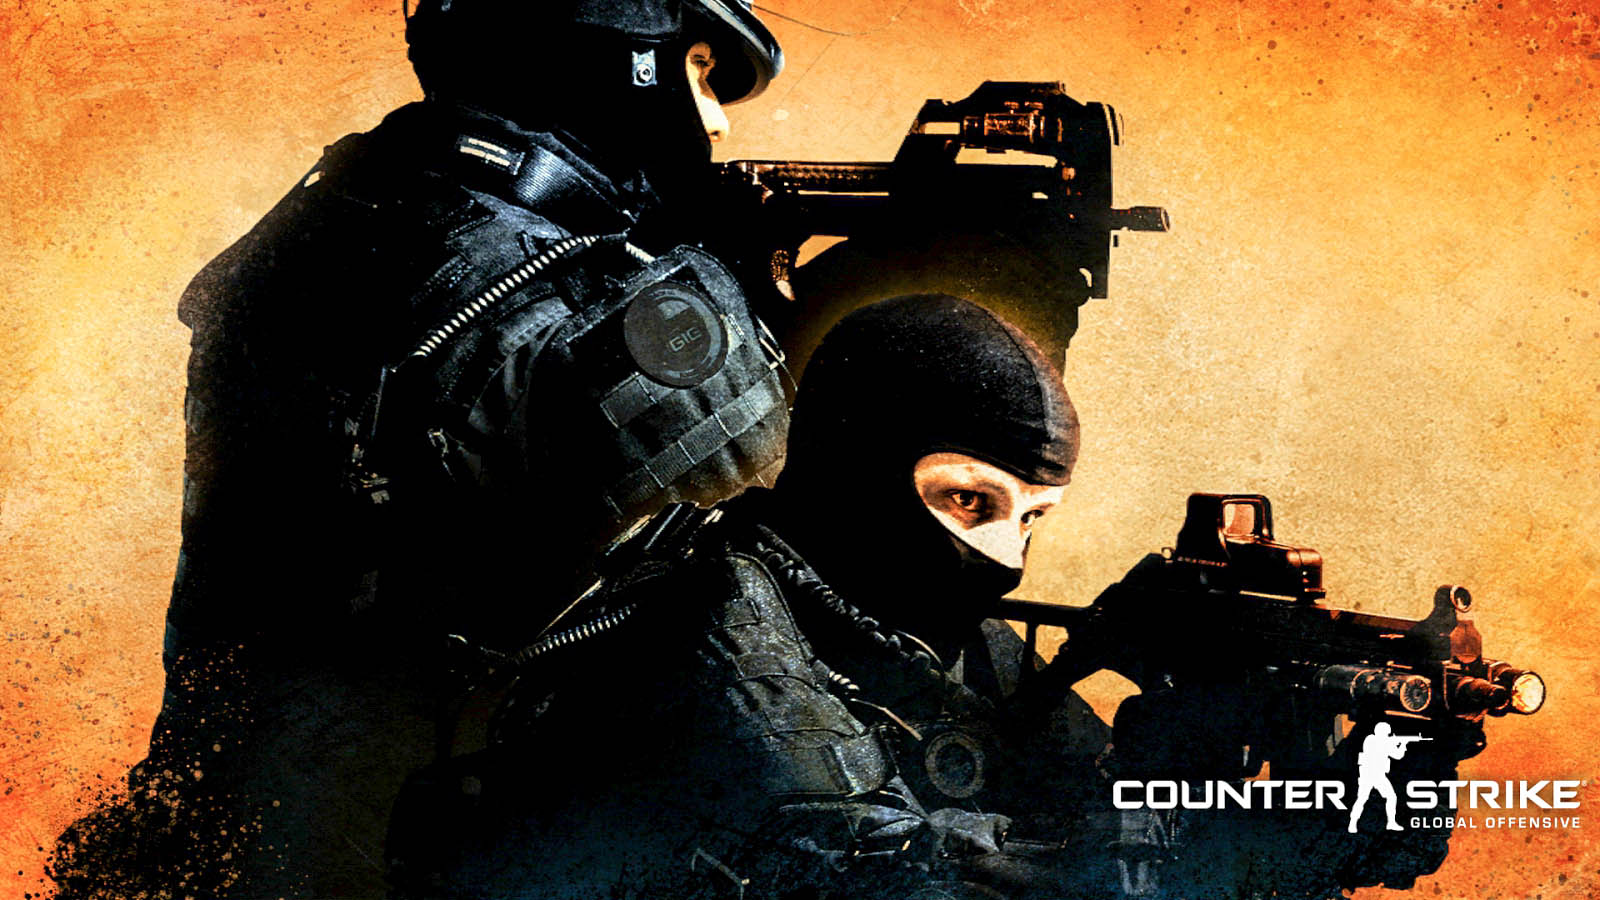 New Hollywood Movies Hd Wallpapers Counter Strike High Resolution Hd Wallpapers All Hd